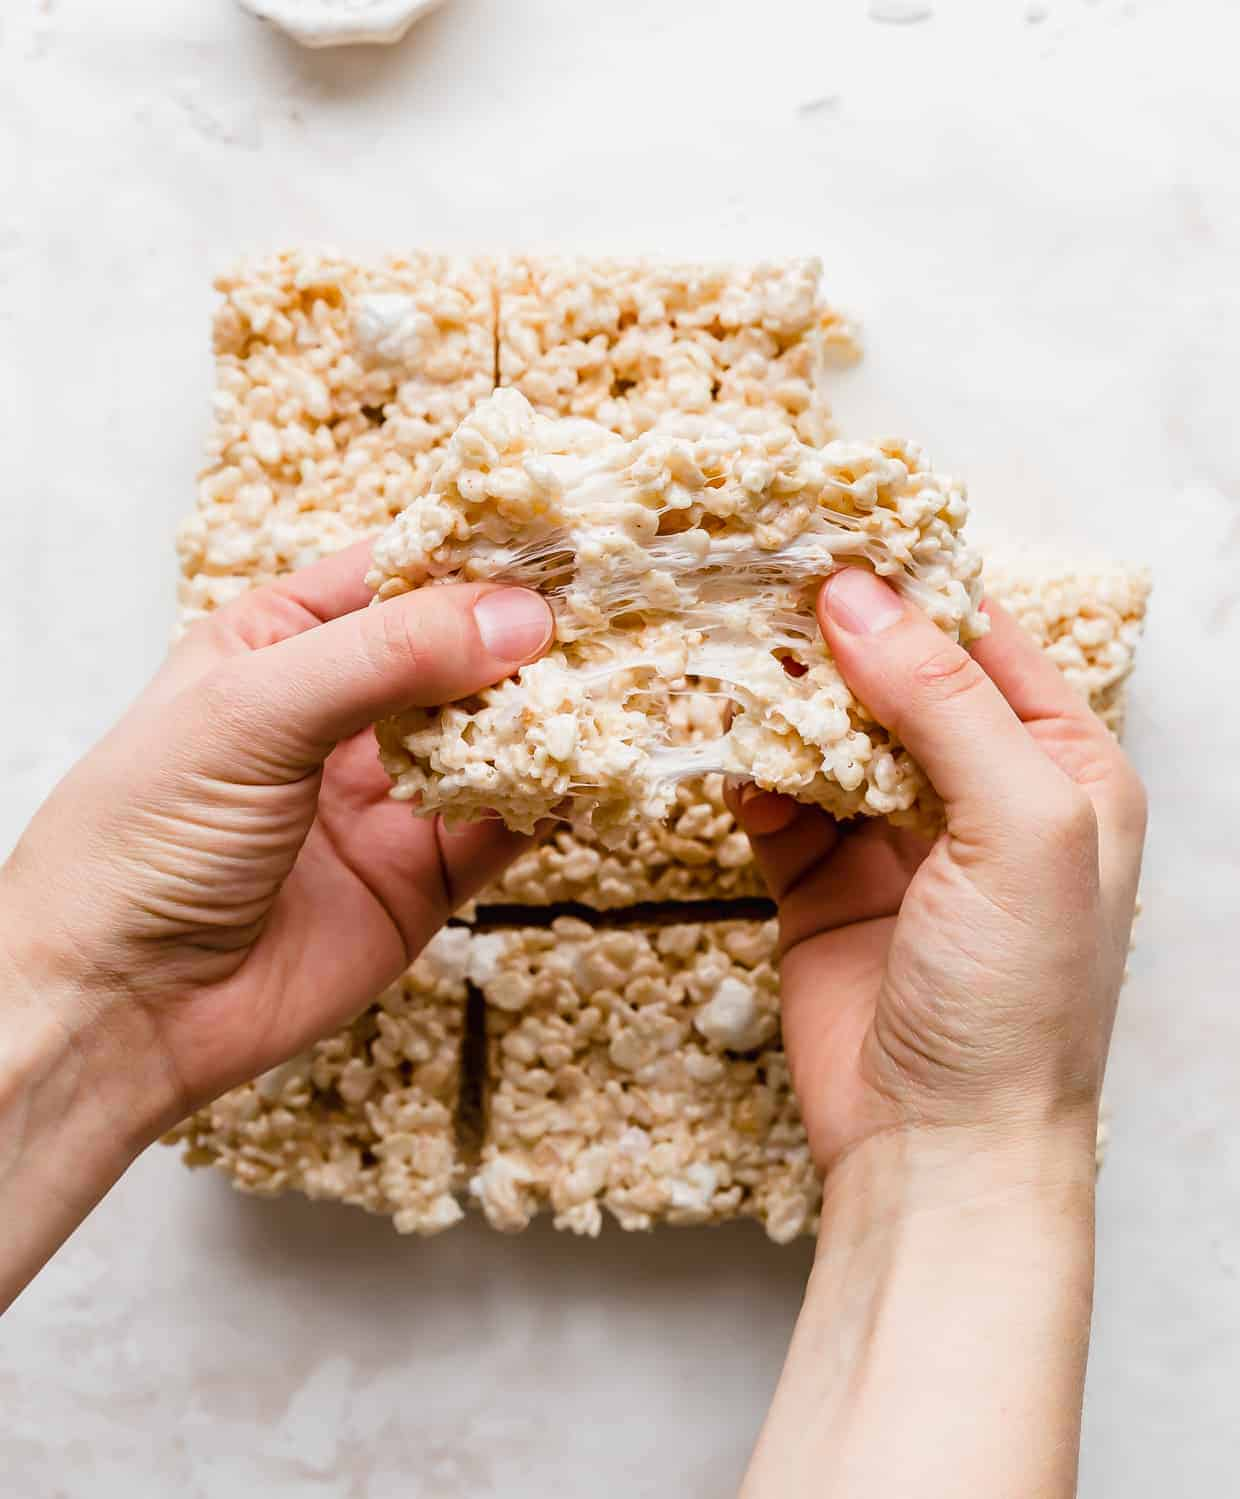 A pair of hands pulling a gooey Rice Krispie treat apart.